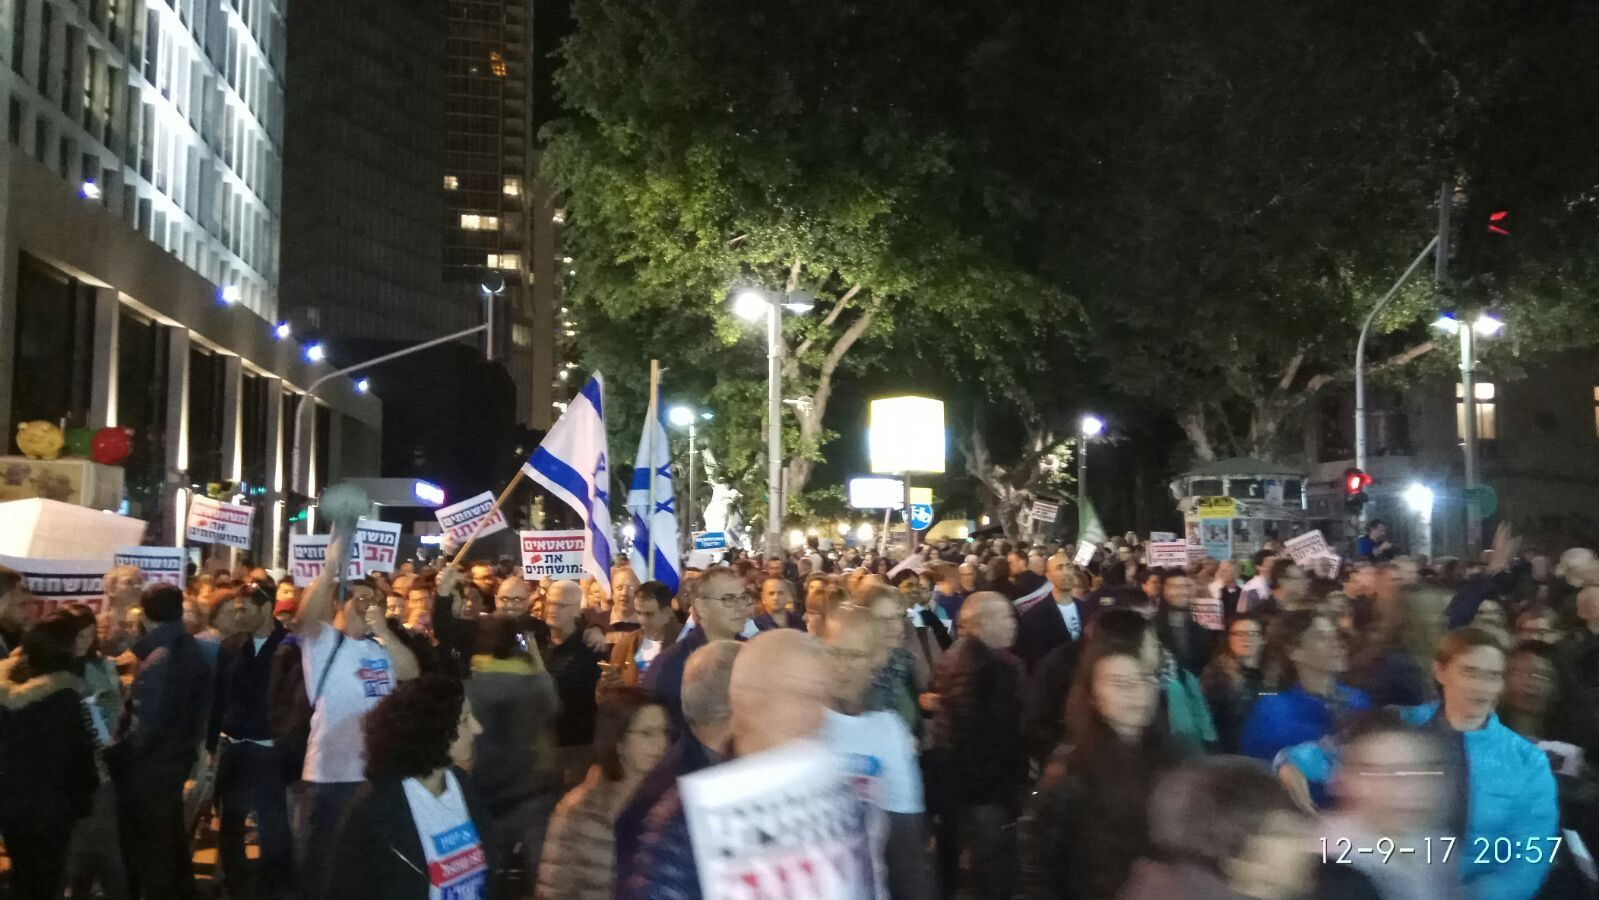 Thousands March In Tel Aviv To Protest Netanyahu, Corruption